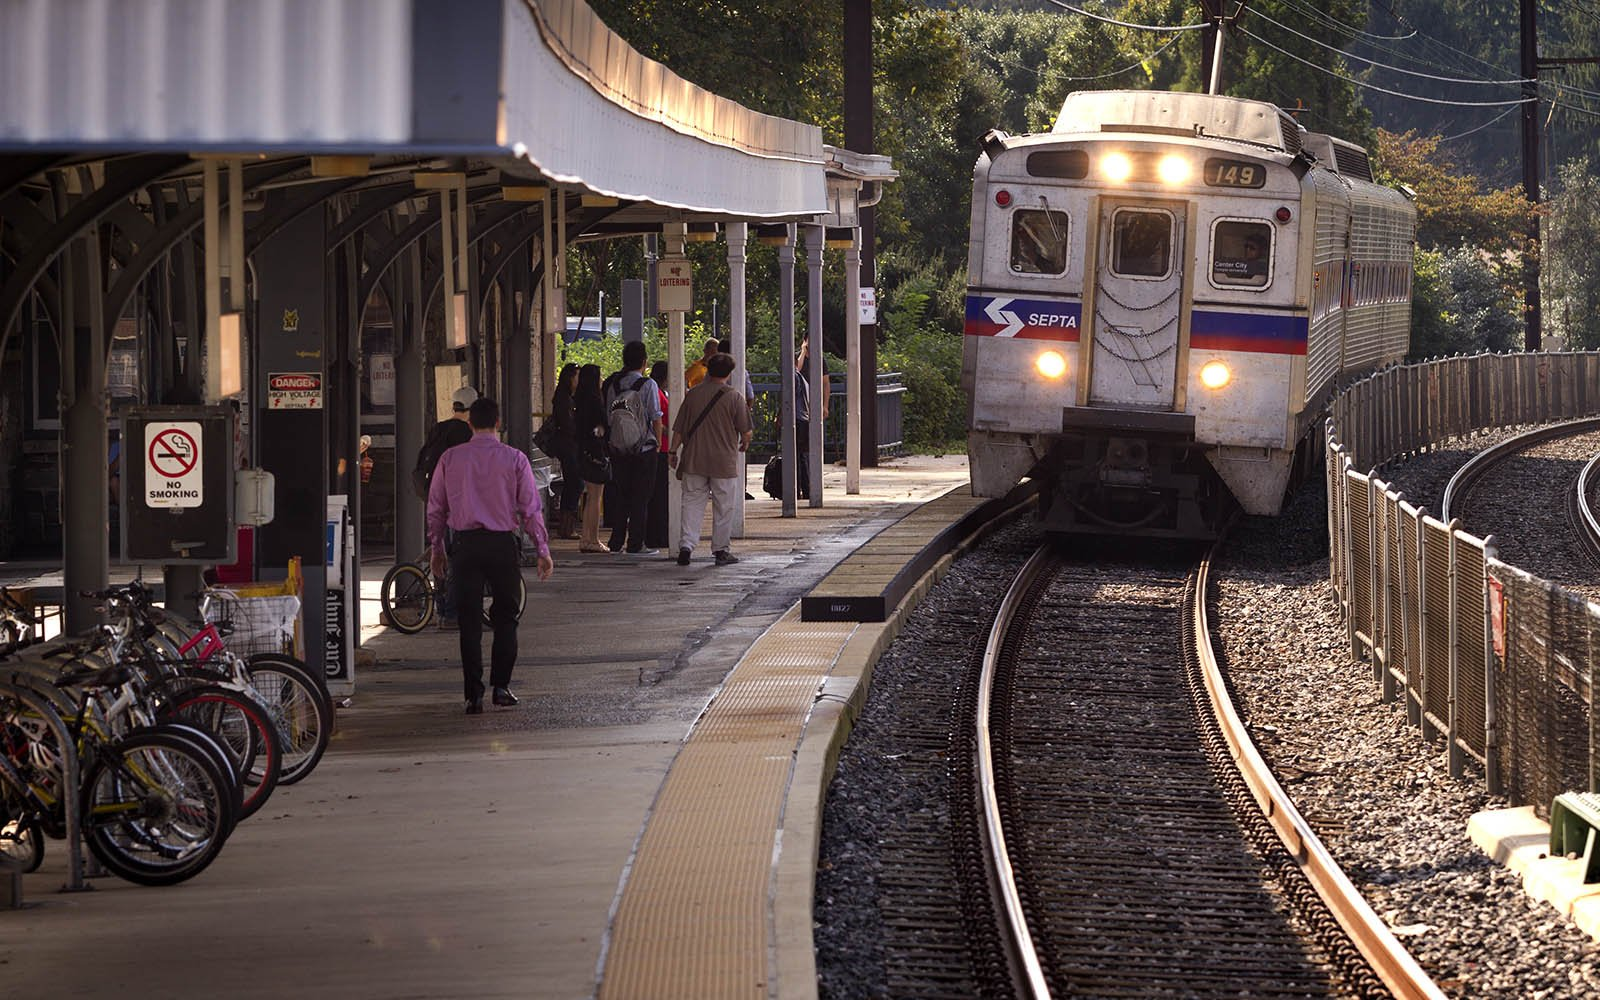 A SEPTA train rolls into the Swarthmore train station